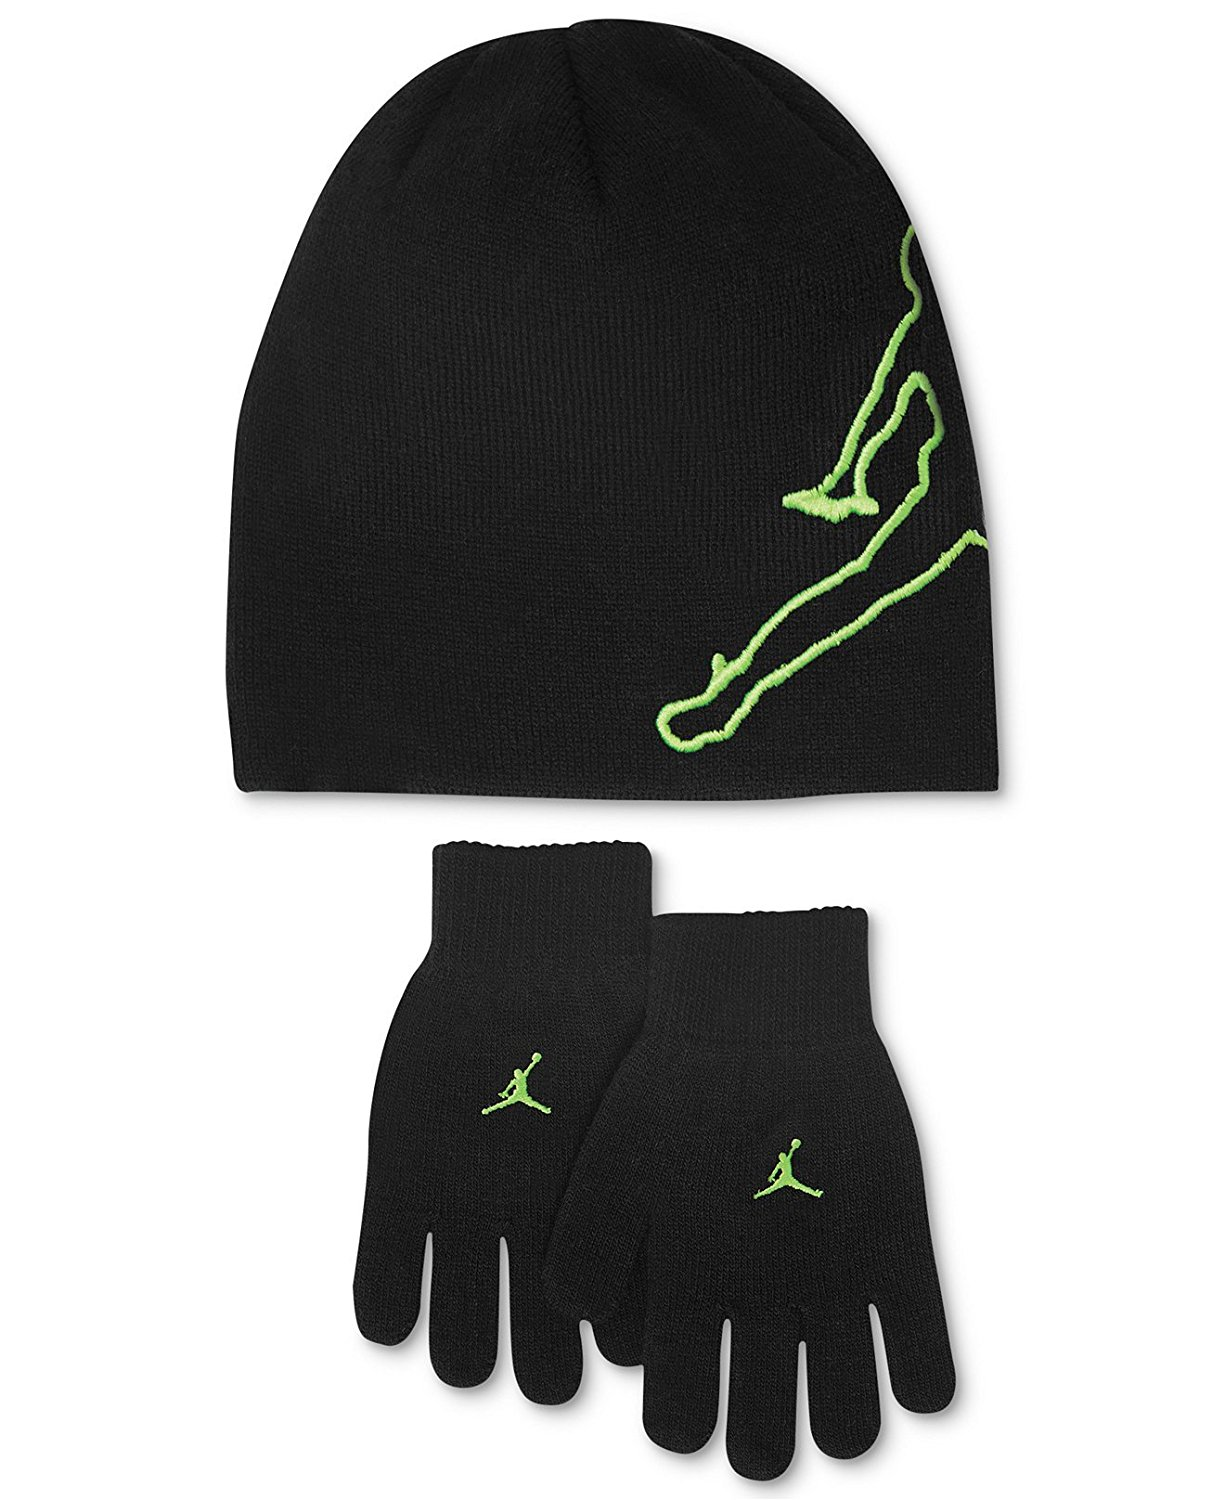 581842475f5 Get Quotations · Nike Jordan Boys Winter Hat Beanie Cap Gloves Set Youth 8  20